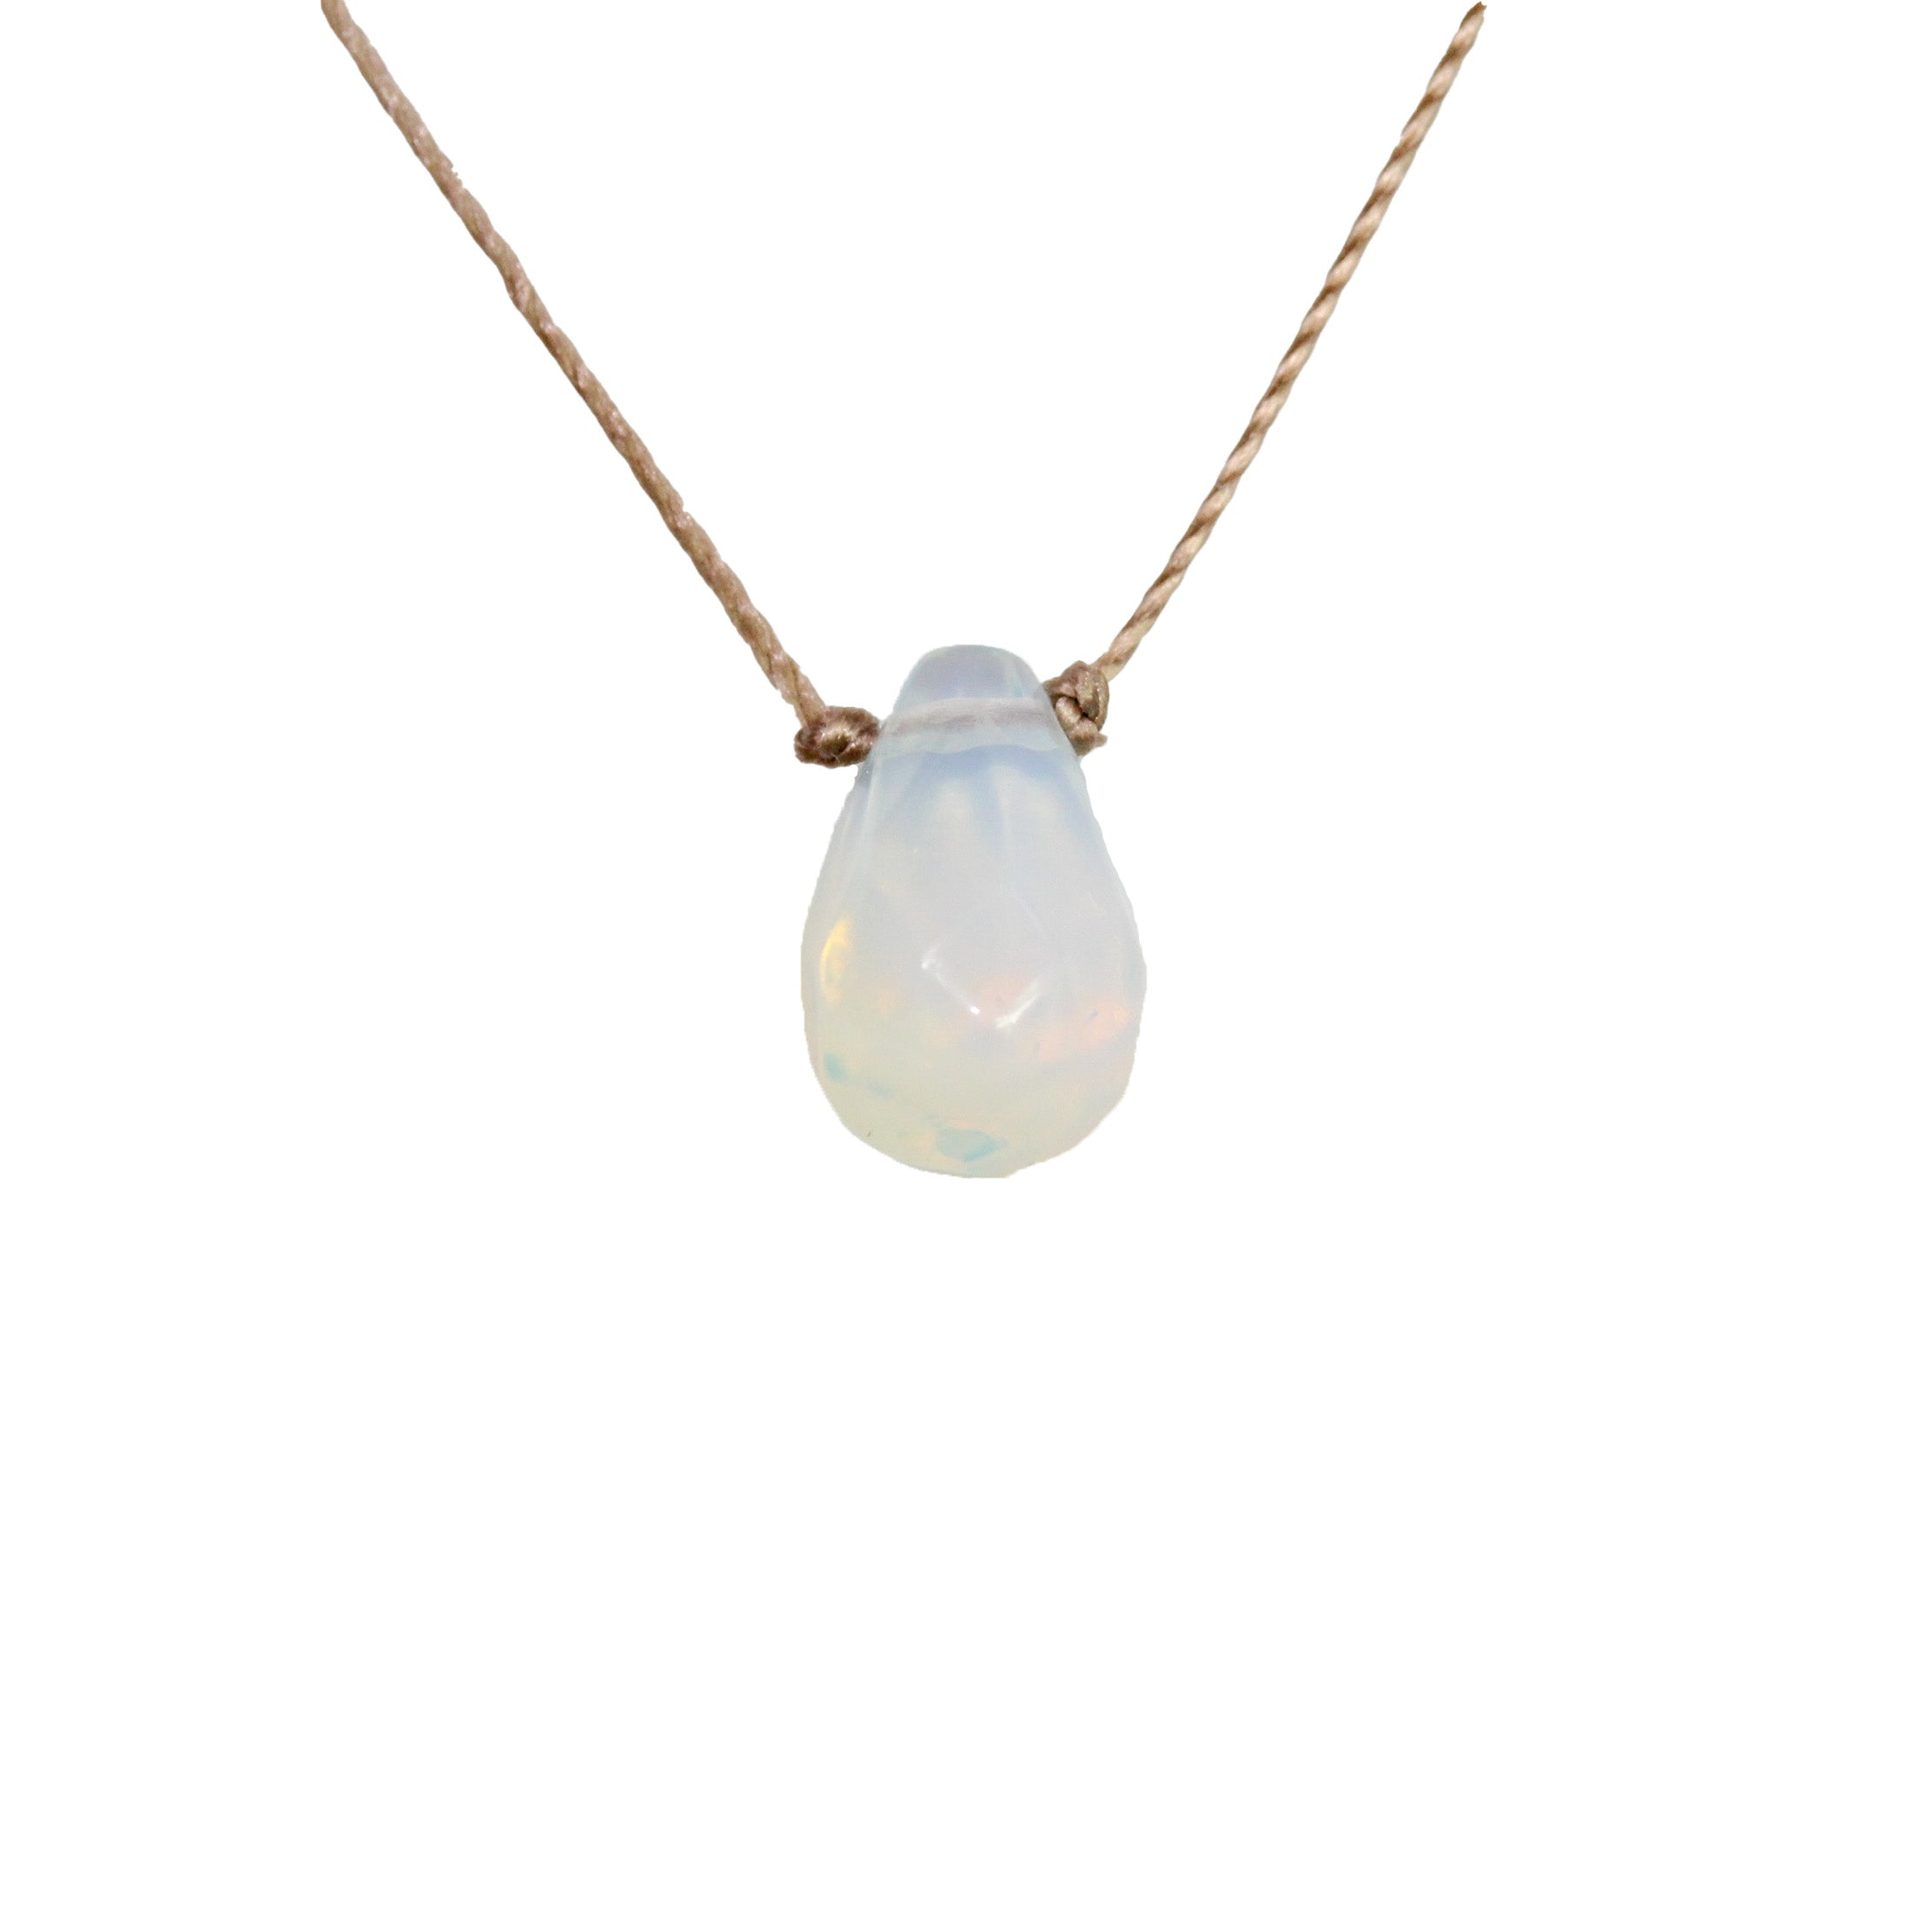 Necklace Opaline Sphere Necklace,Ball Necklace Simple Jewelry,Natural Stone,Moon Necklace,Positive Energy Ships Today!